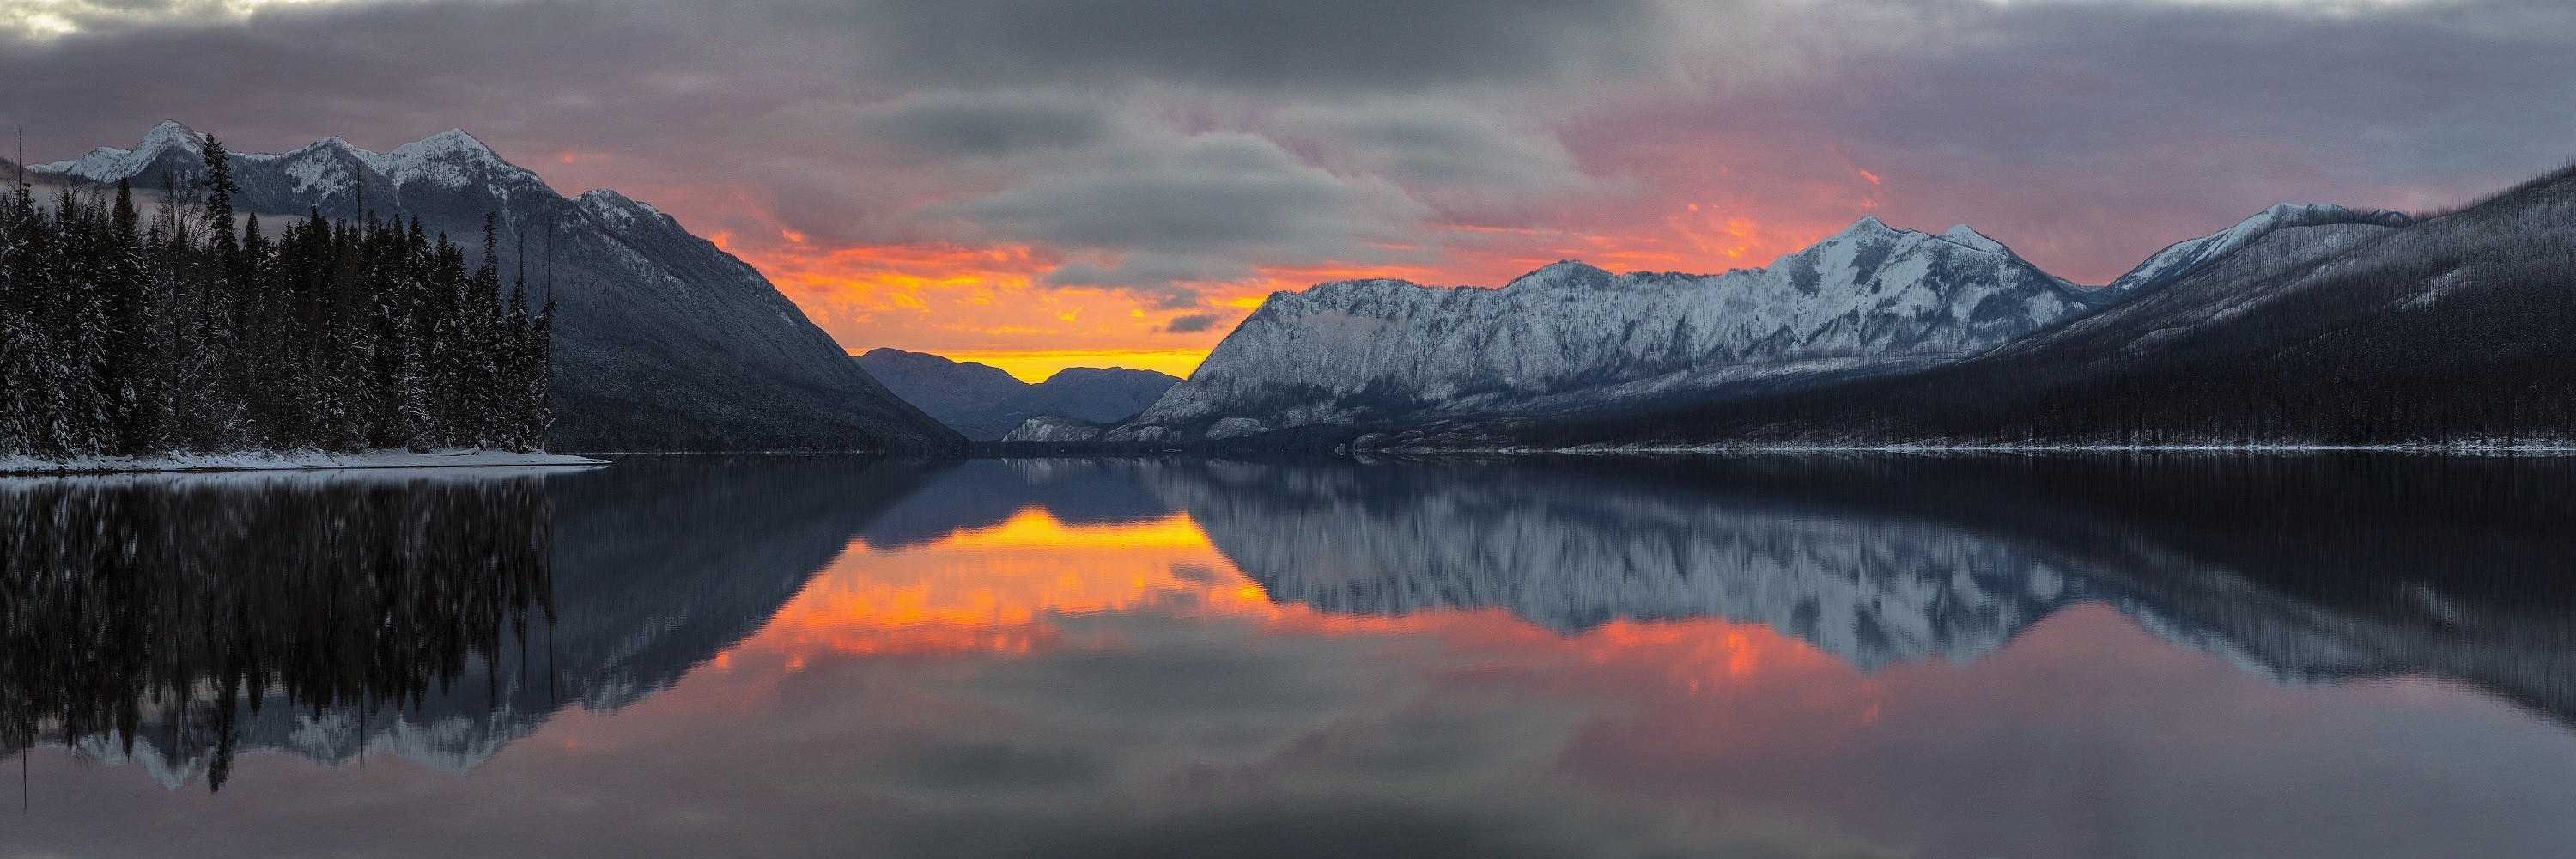 Reflection of Mountains in Lake during Sunset